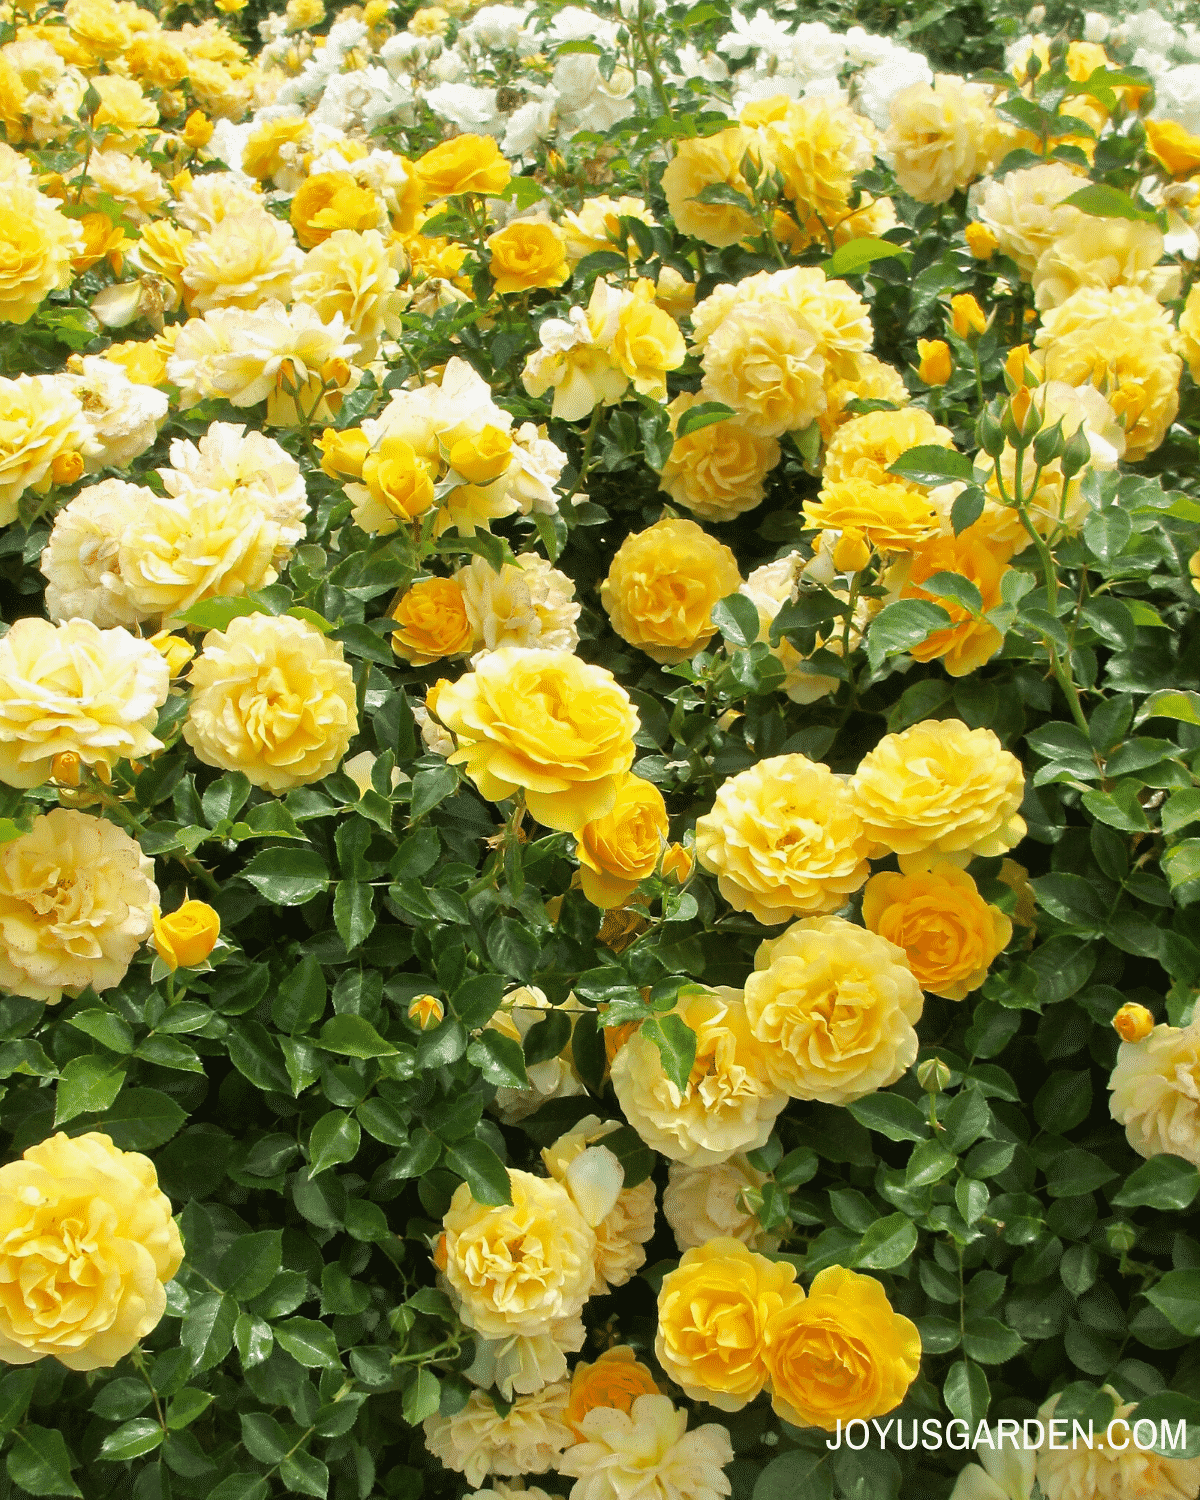 several bushes of  yellow roses with glossy green leaves